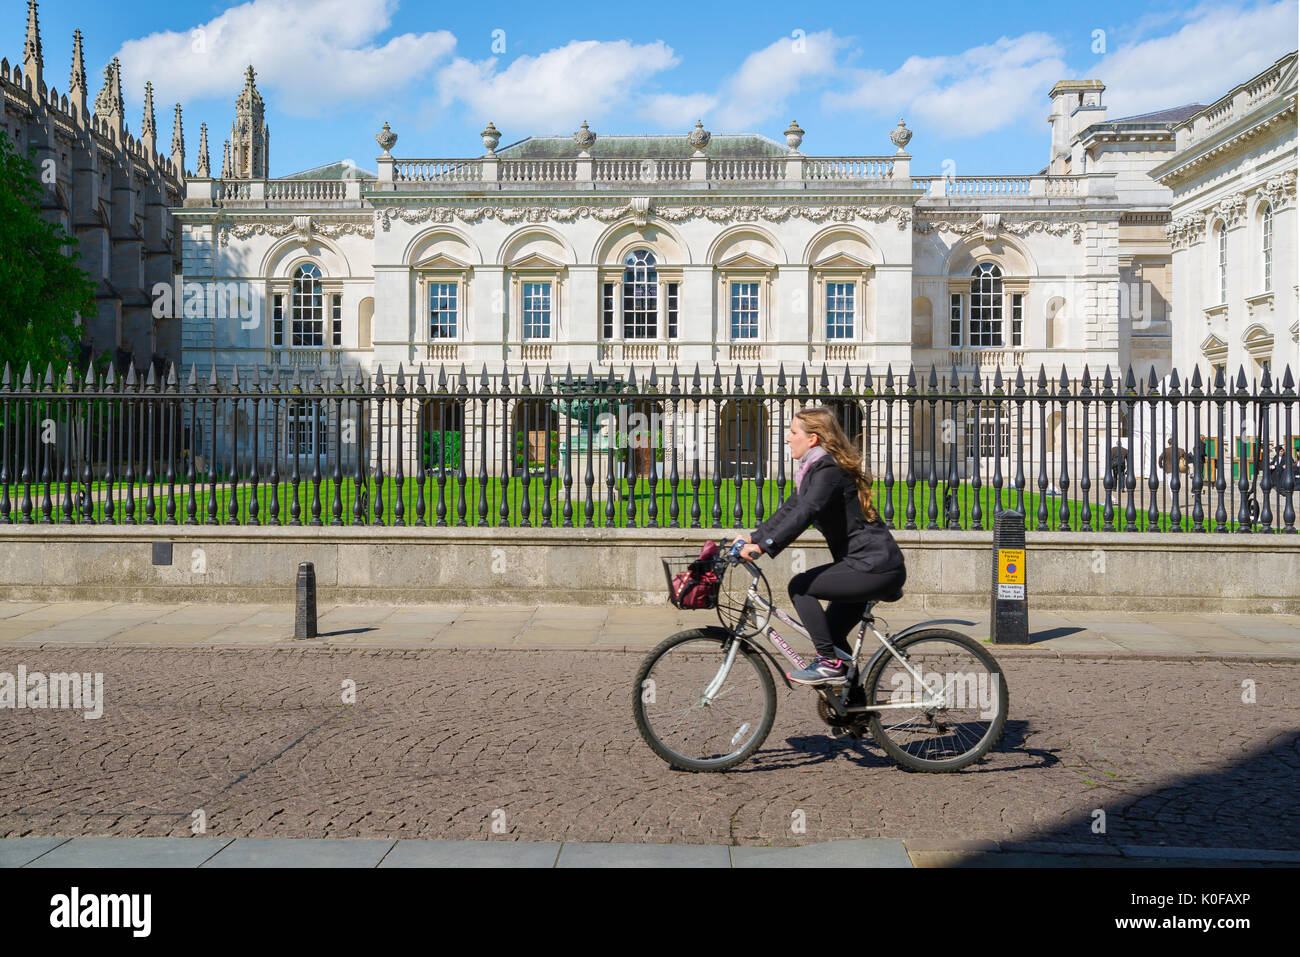 Student Cambridge University UK, a student cycles past the Old Schools Building in King's Parade in the centre of Cambridge, England. - Stock Image